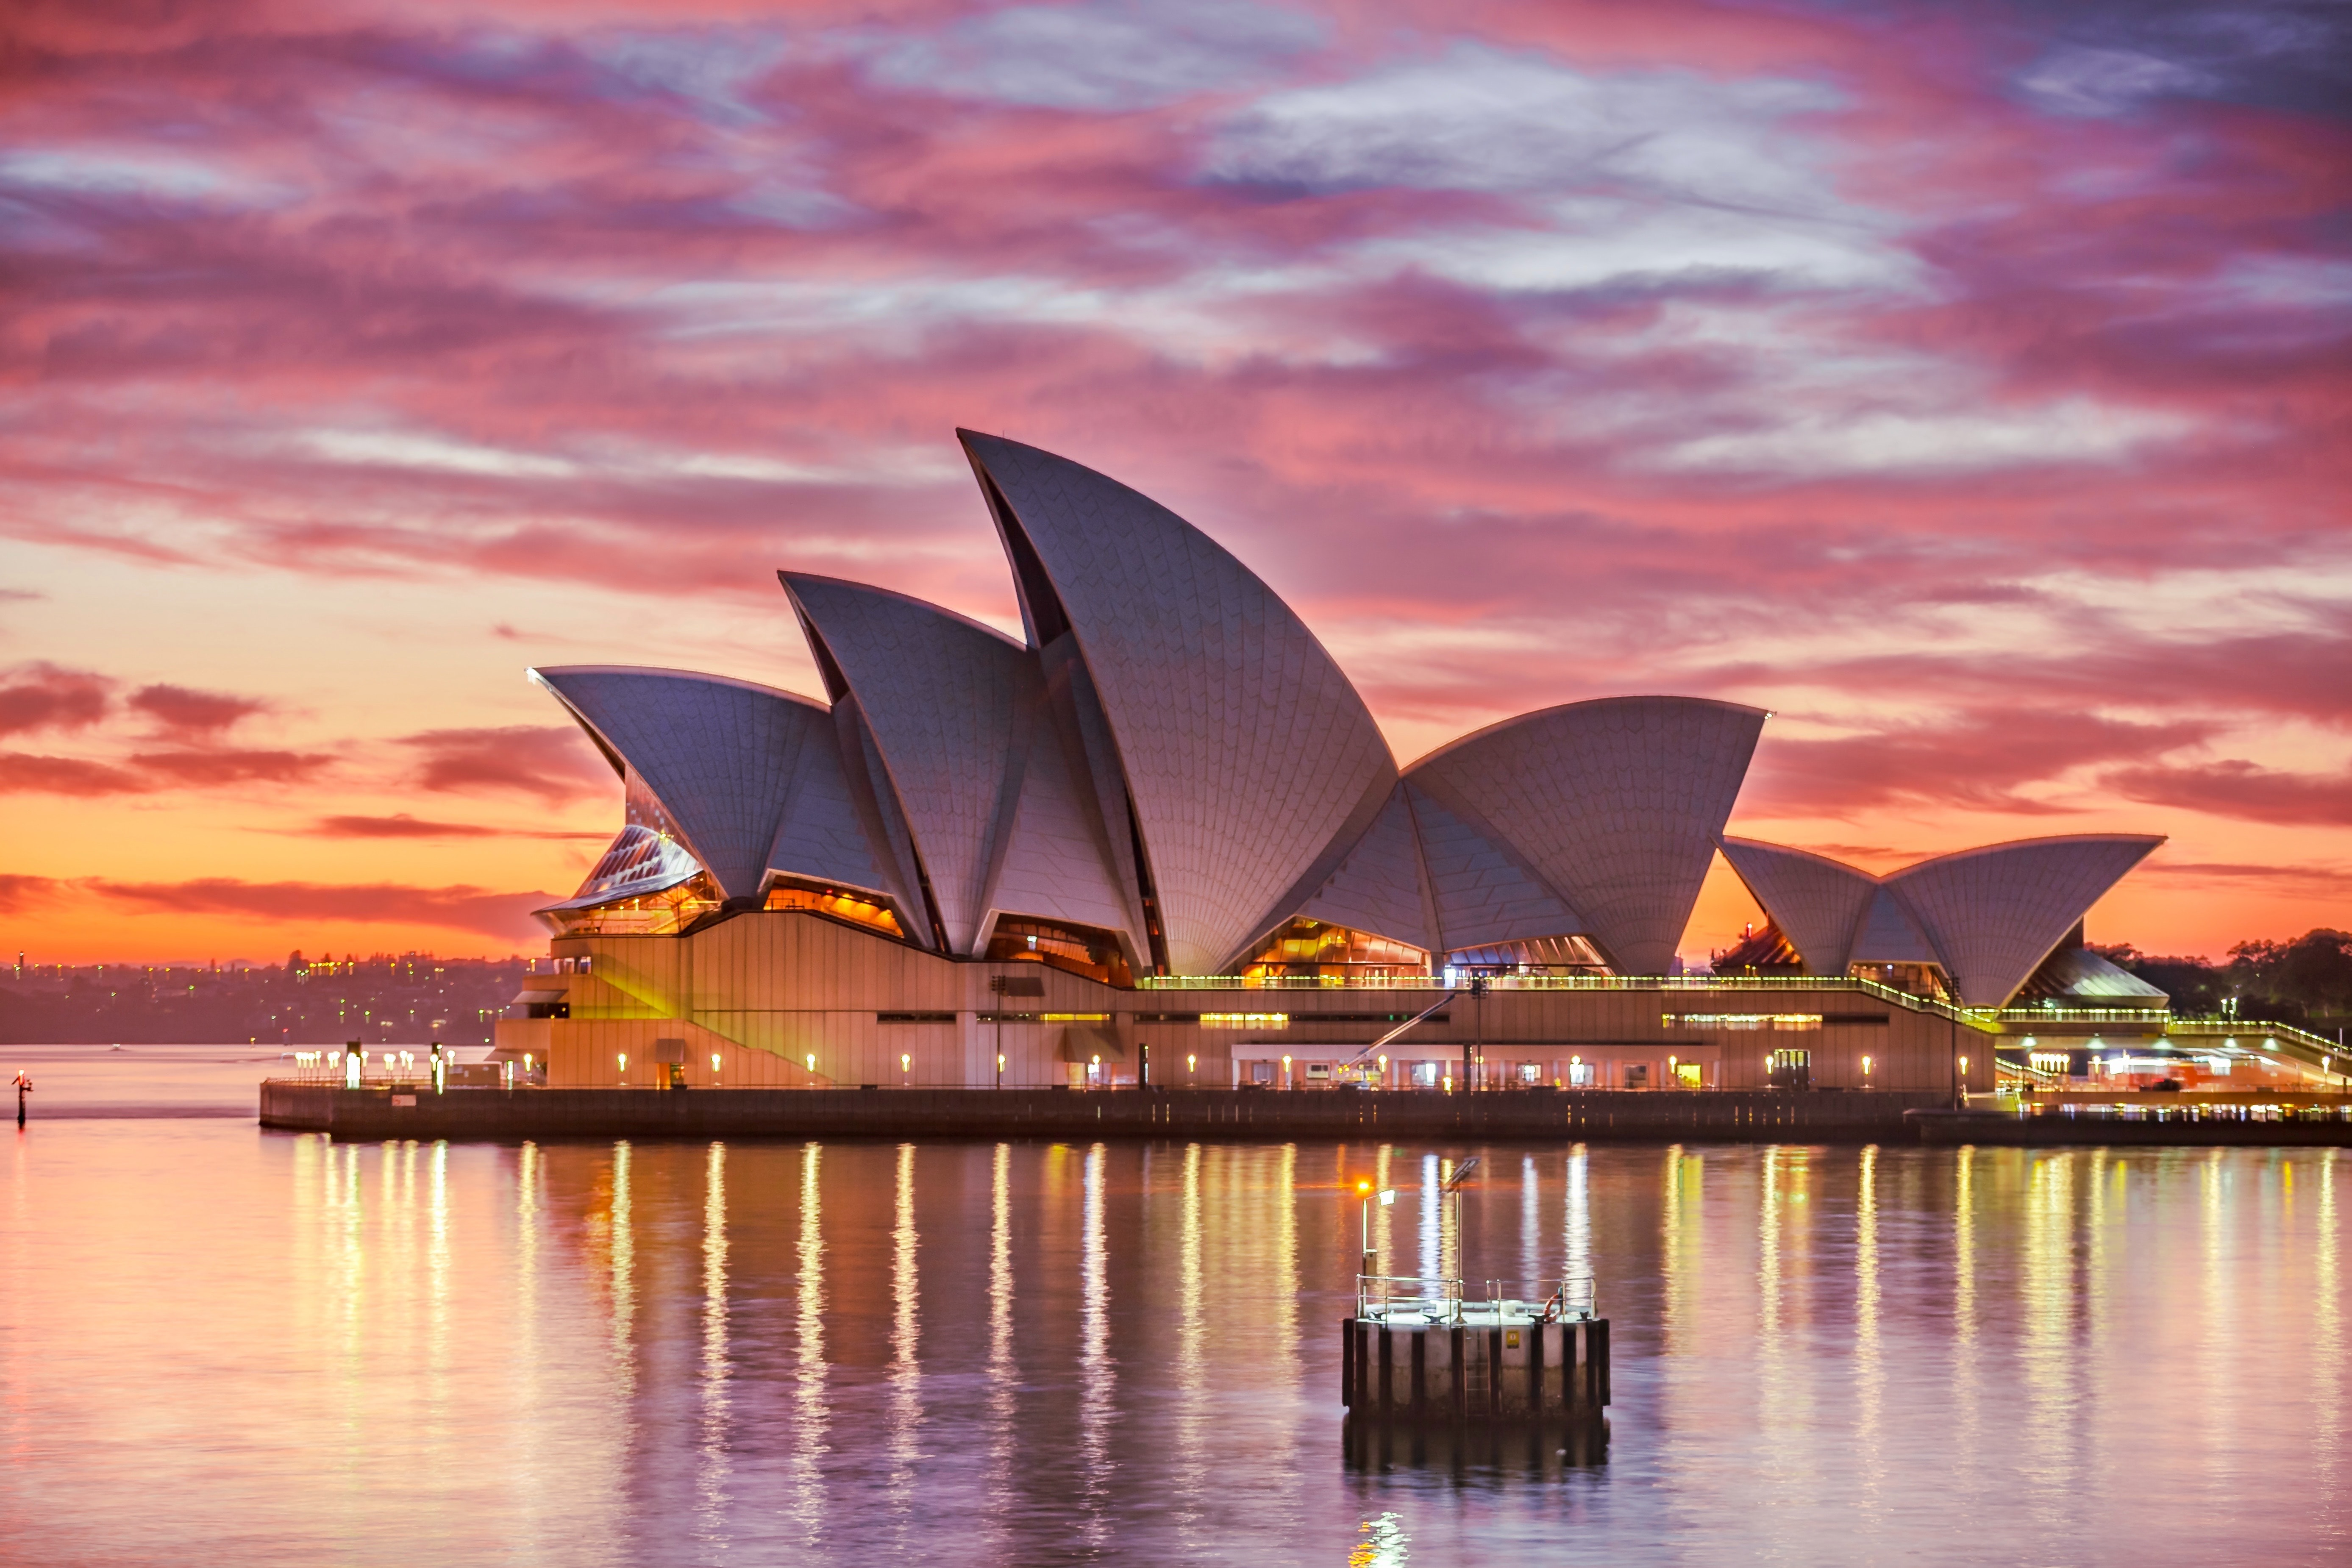 Sydney, Visiting Sydney in the Winter? Some Sightseeing Suggestions